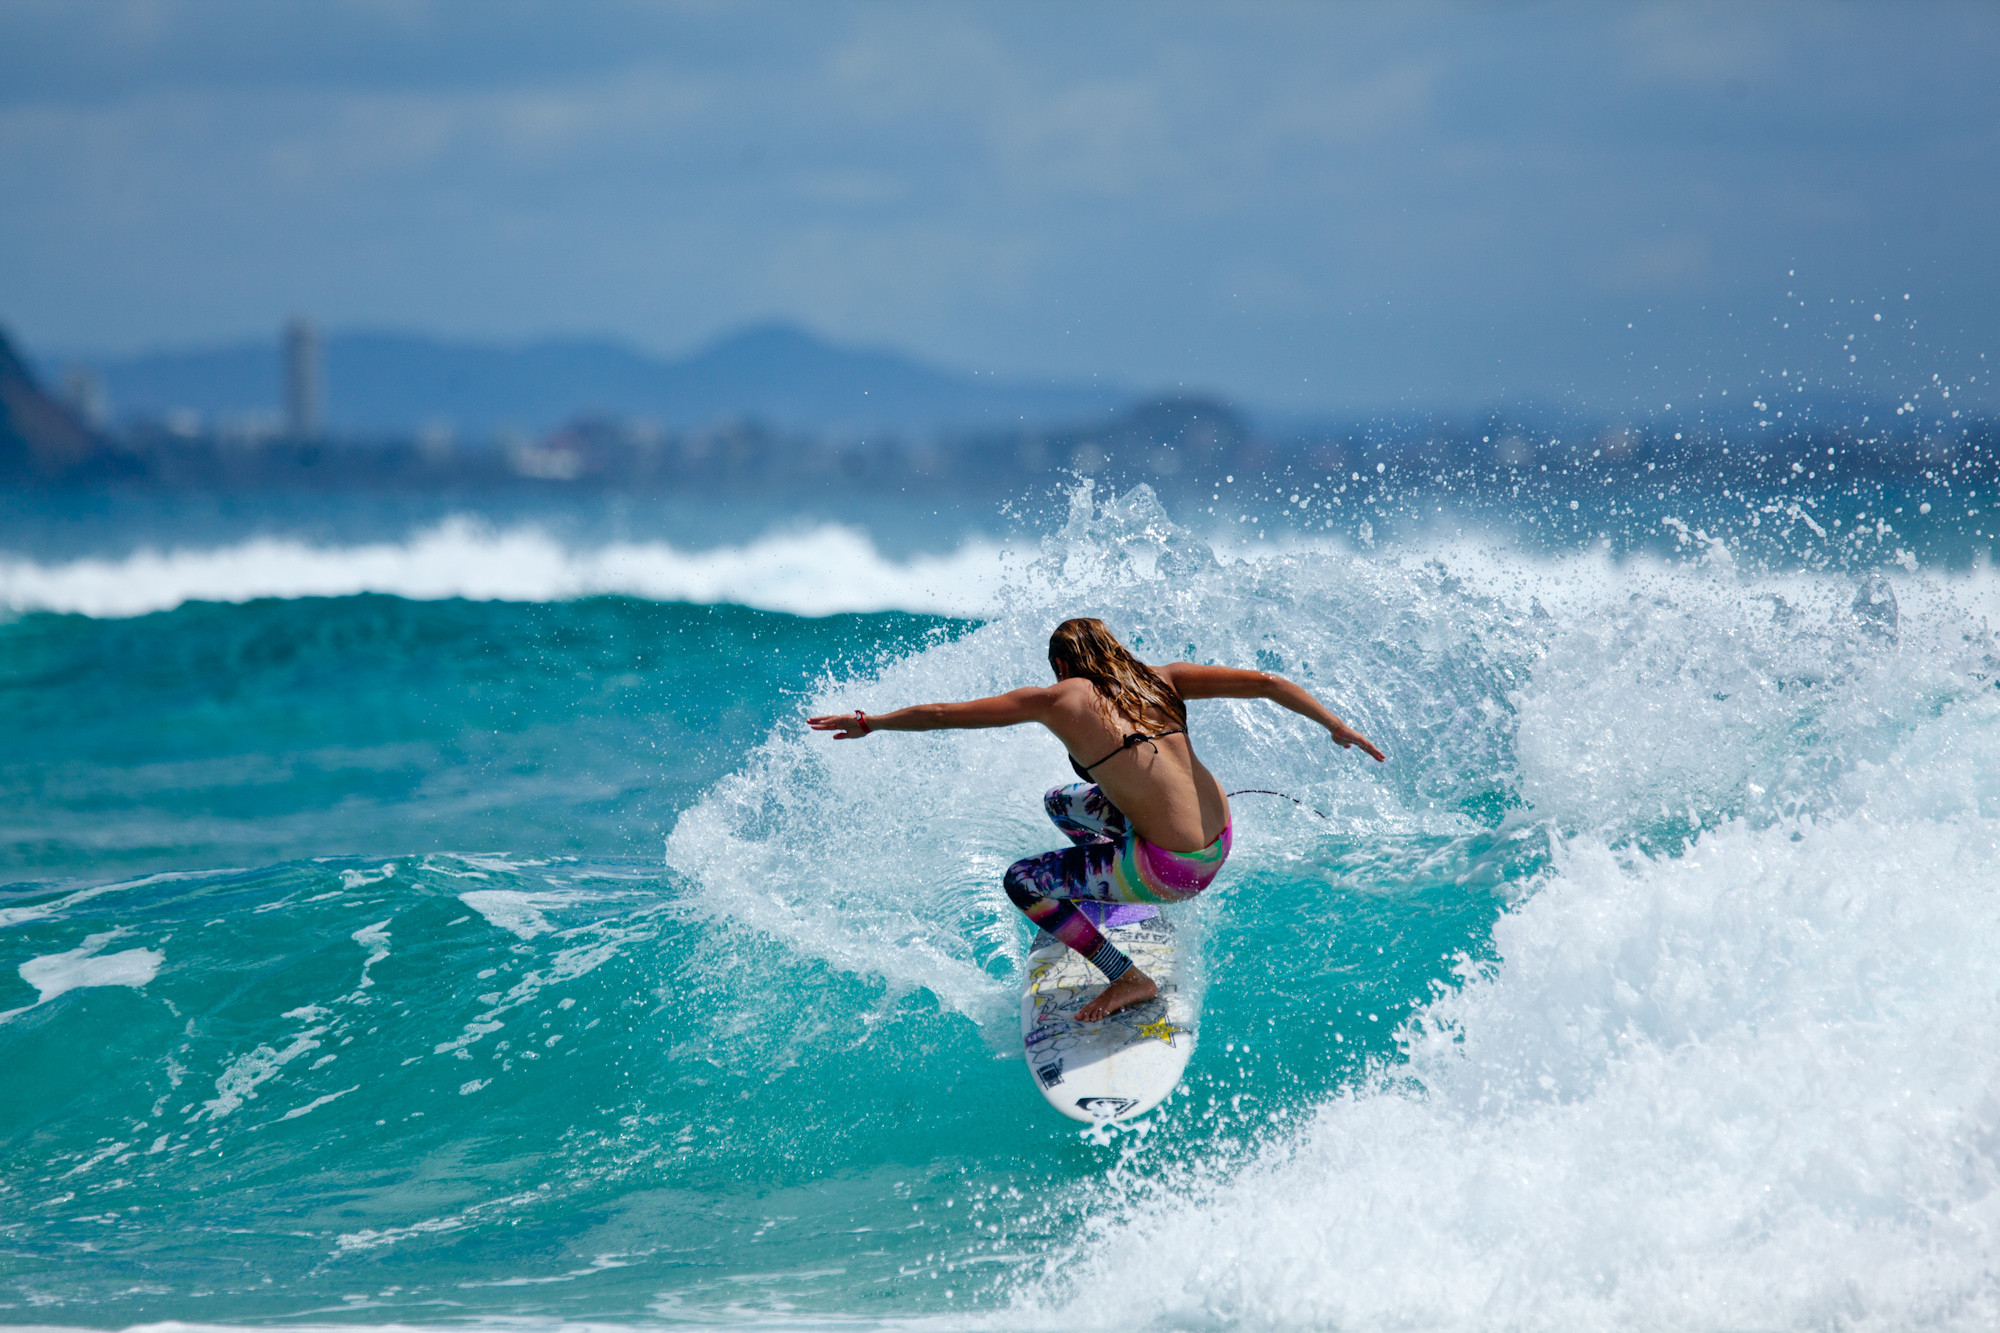 New Surfing High Quality Wallpapers 2015 …